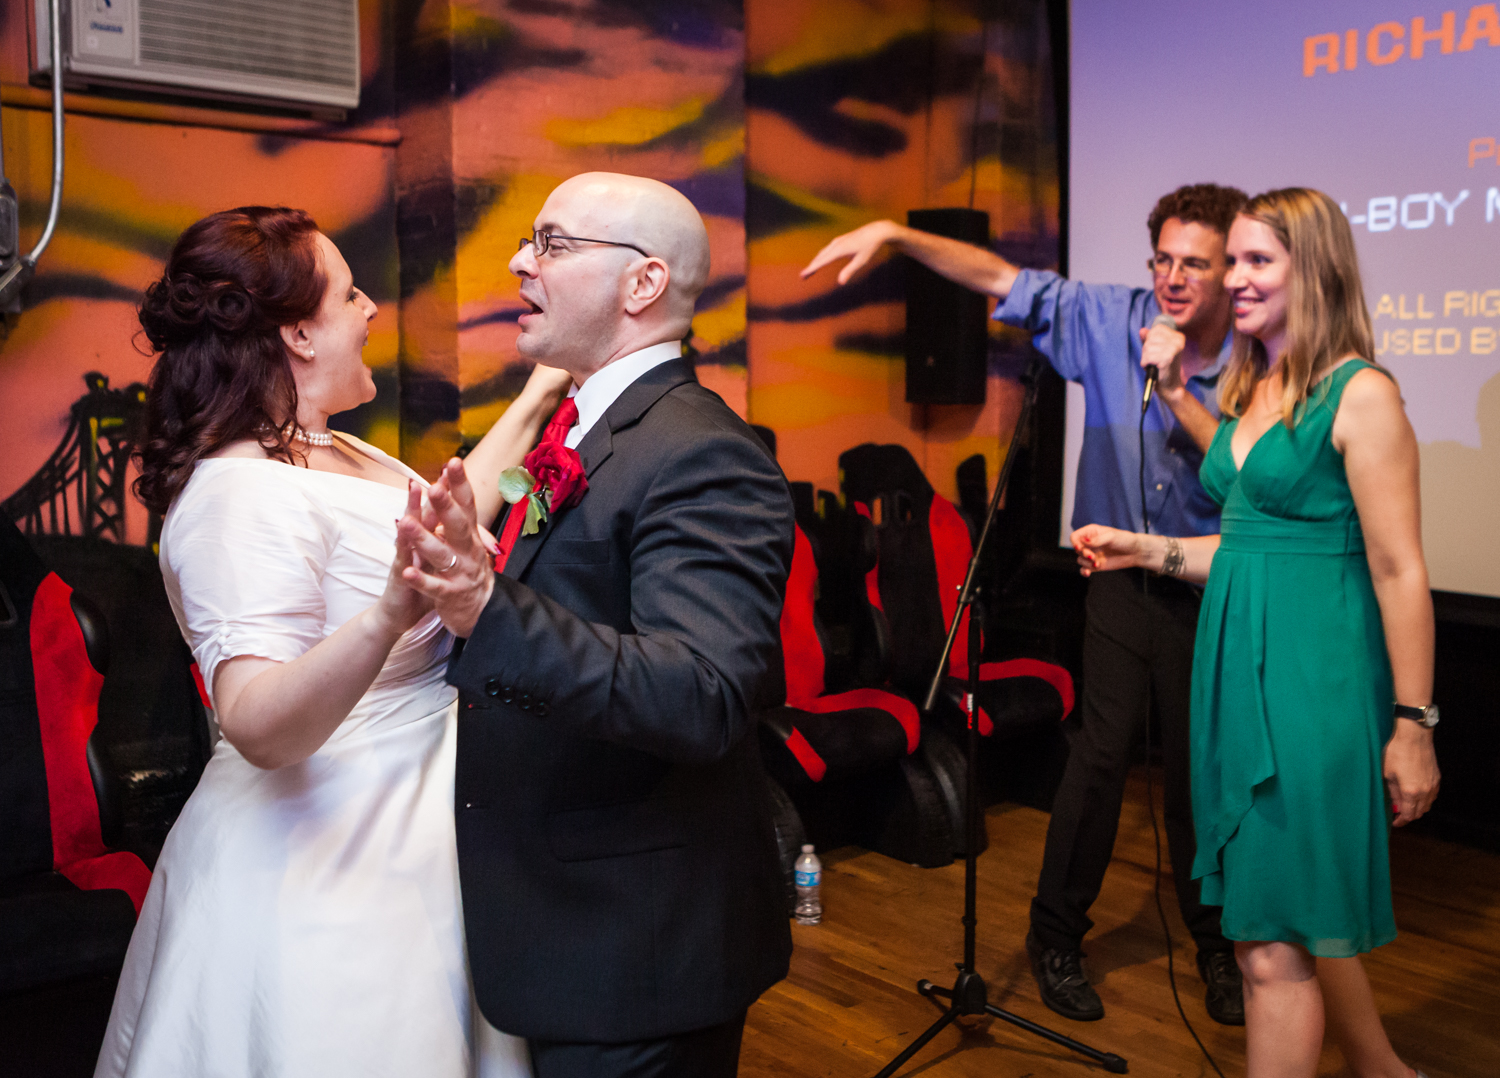 Bride and groom dancing with other couple to right